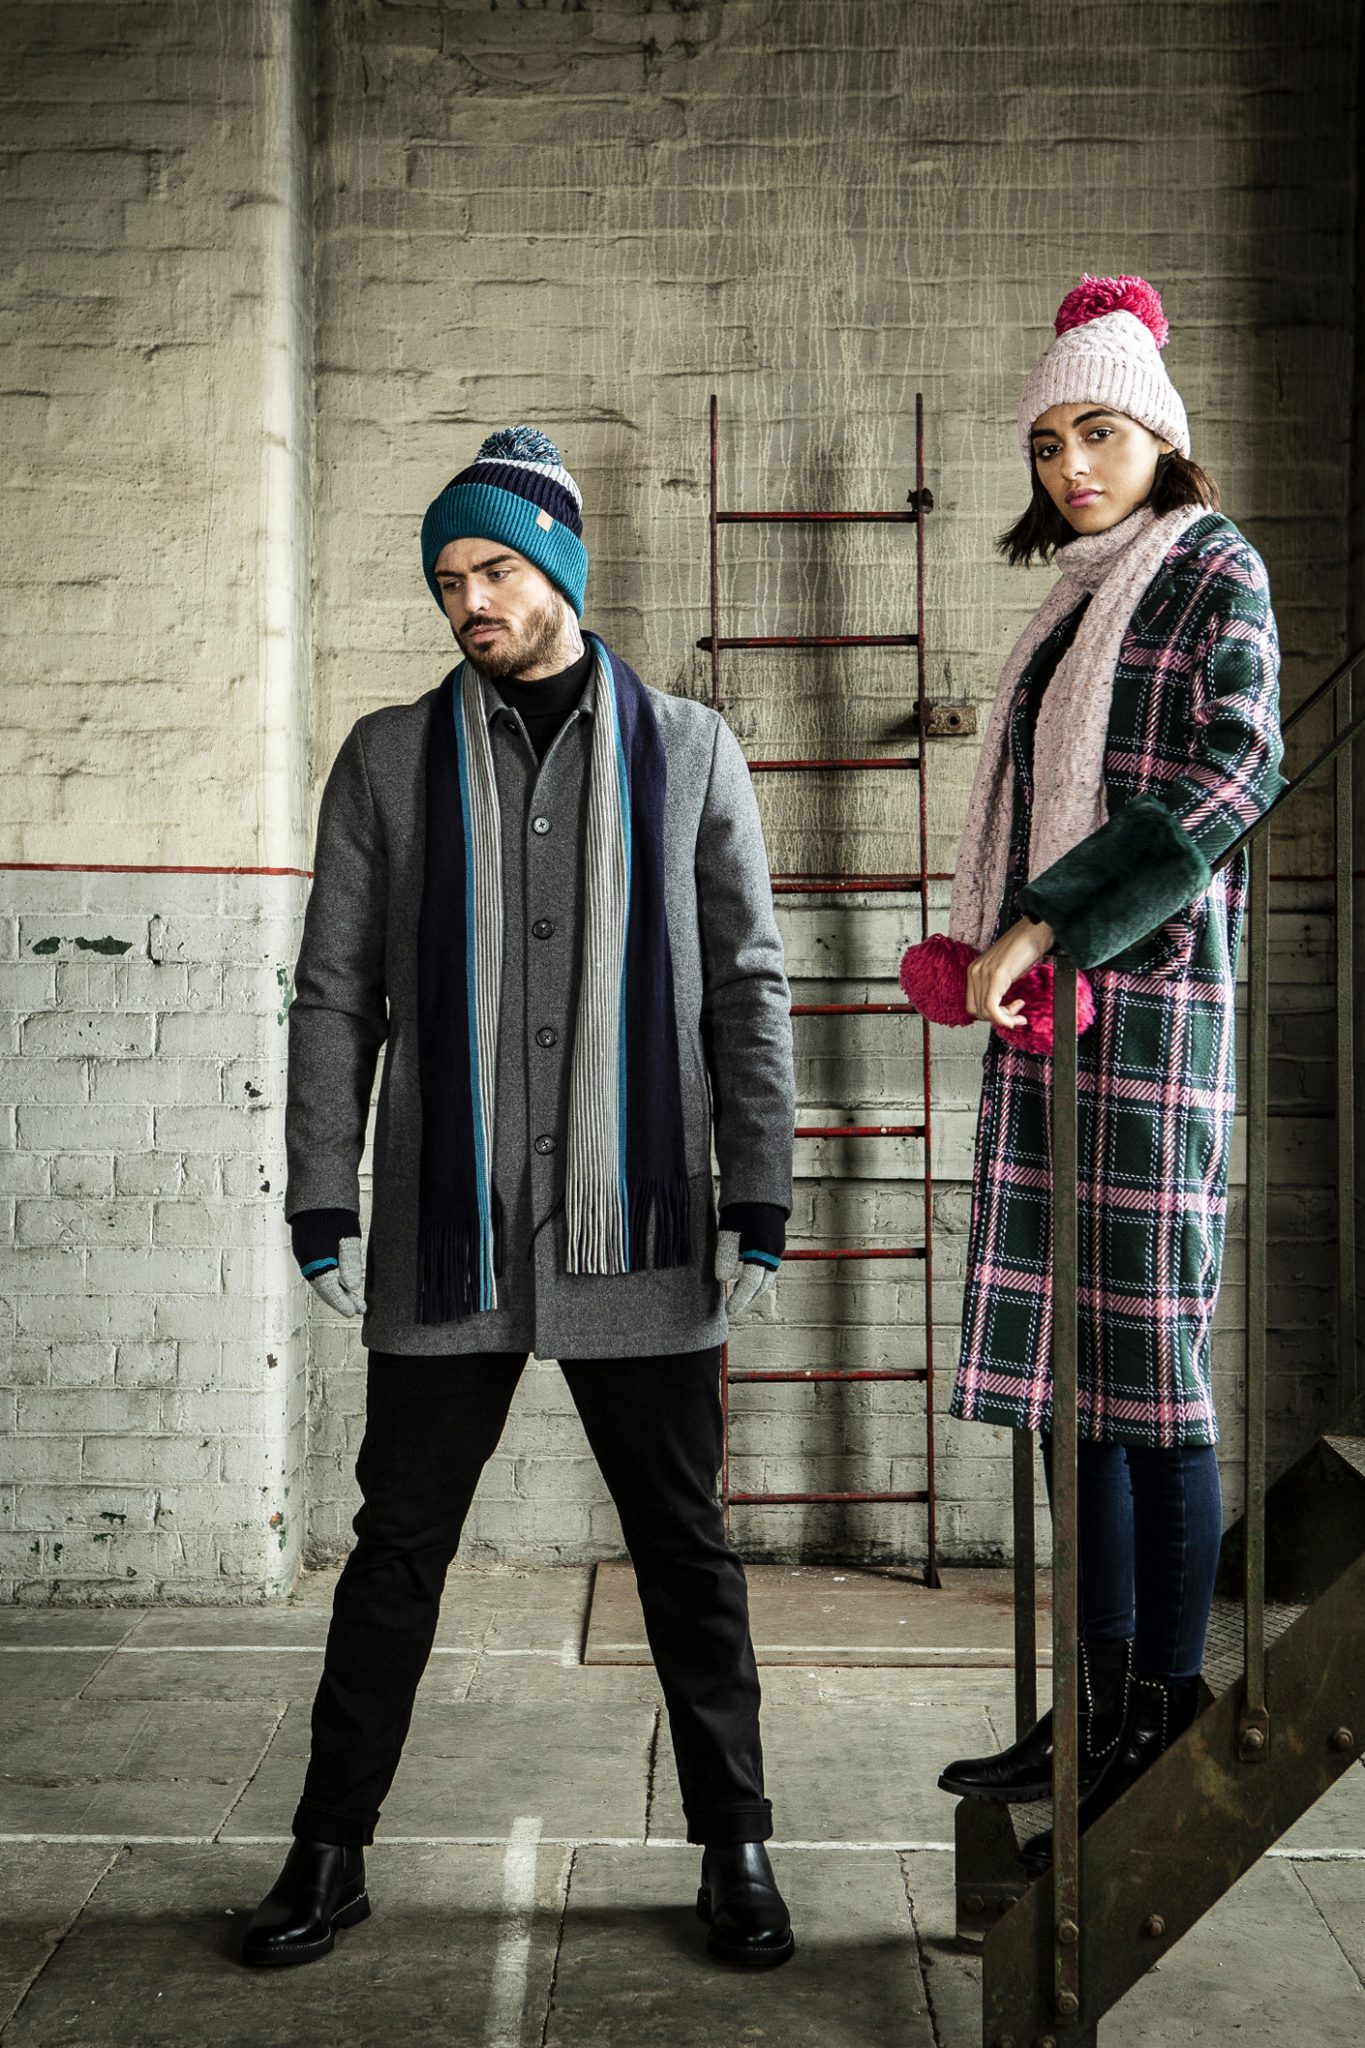 menswear-and-womenswear-fashion-photography-on-location-in-manchester